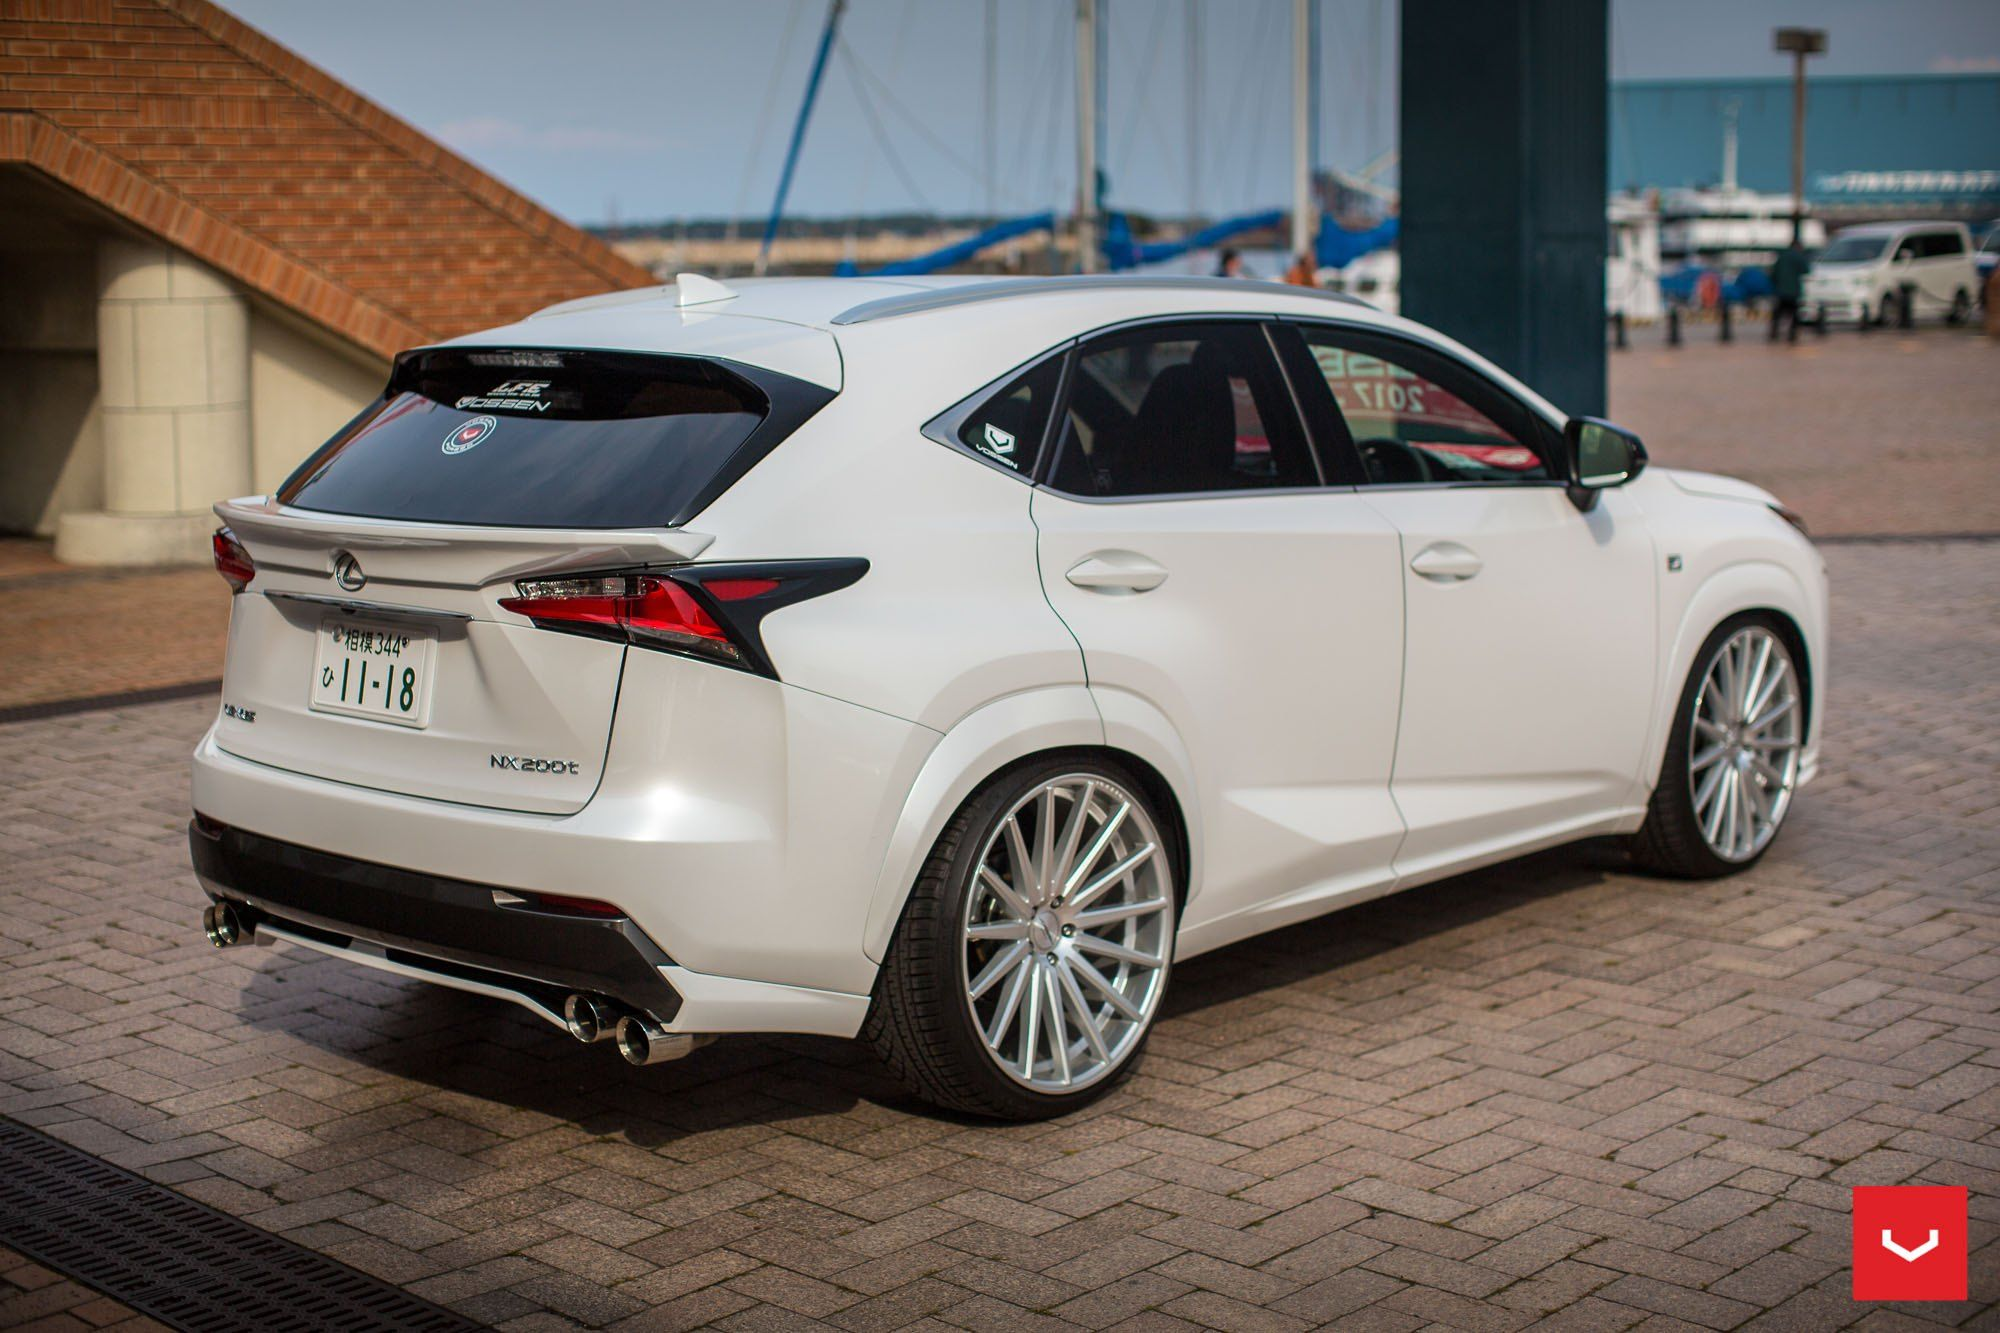 Classy Pearl White Lexus Nx With Lowered Suspension And Vossen Rims White Lexus Vossen Lexus